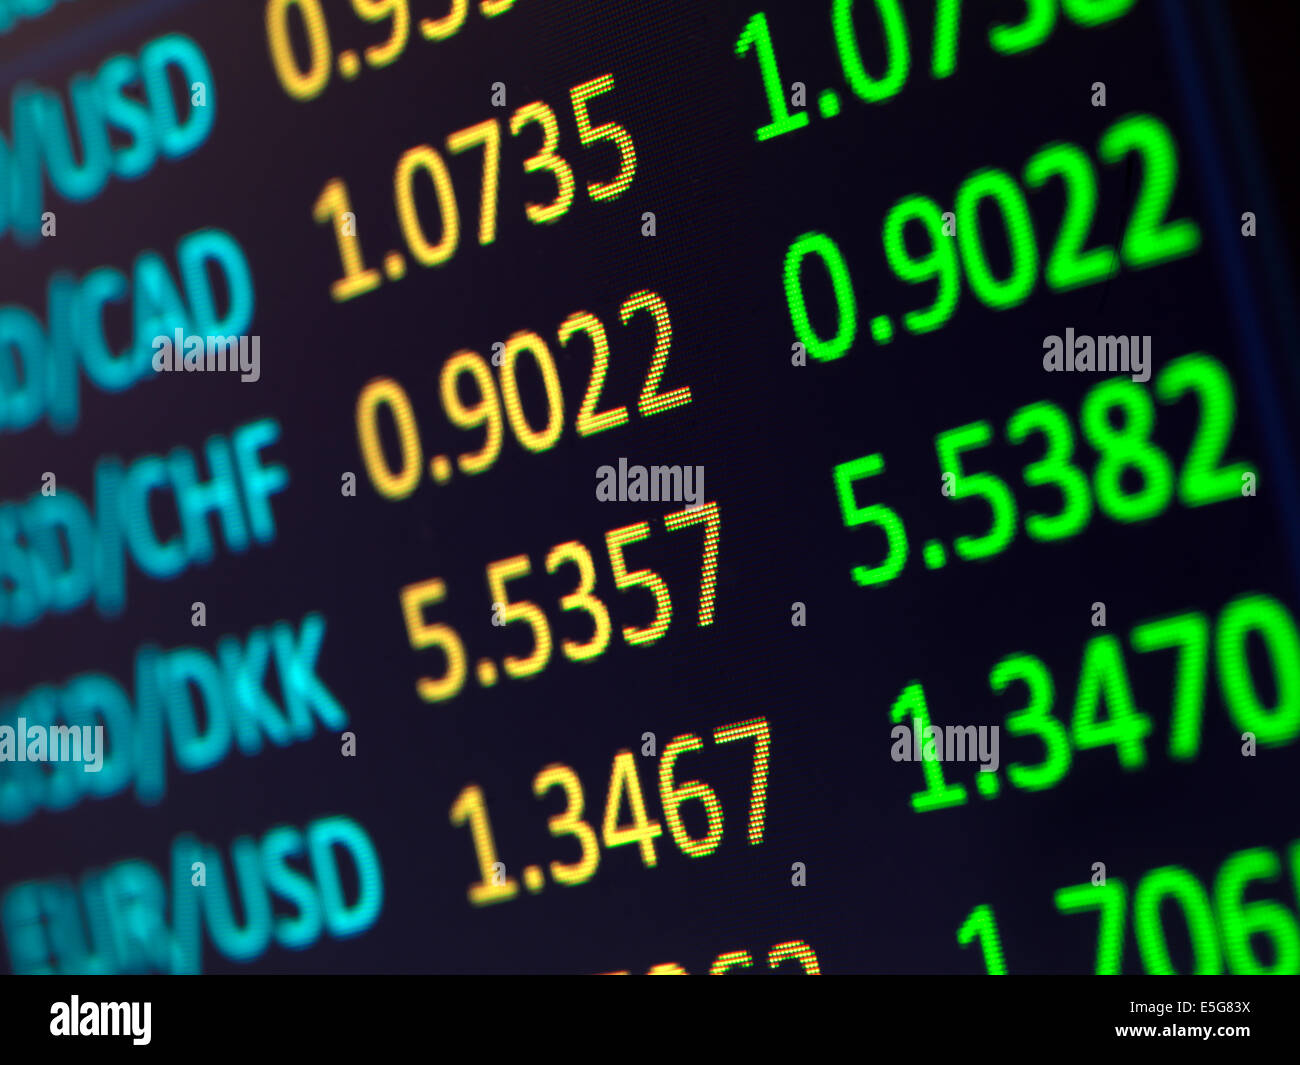 Foreign currency exchange closeup of rates on digital display - Stock Image